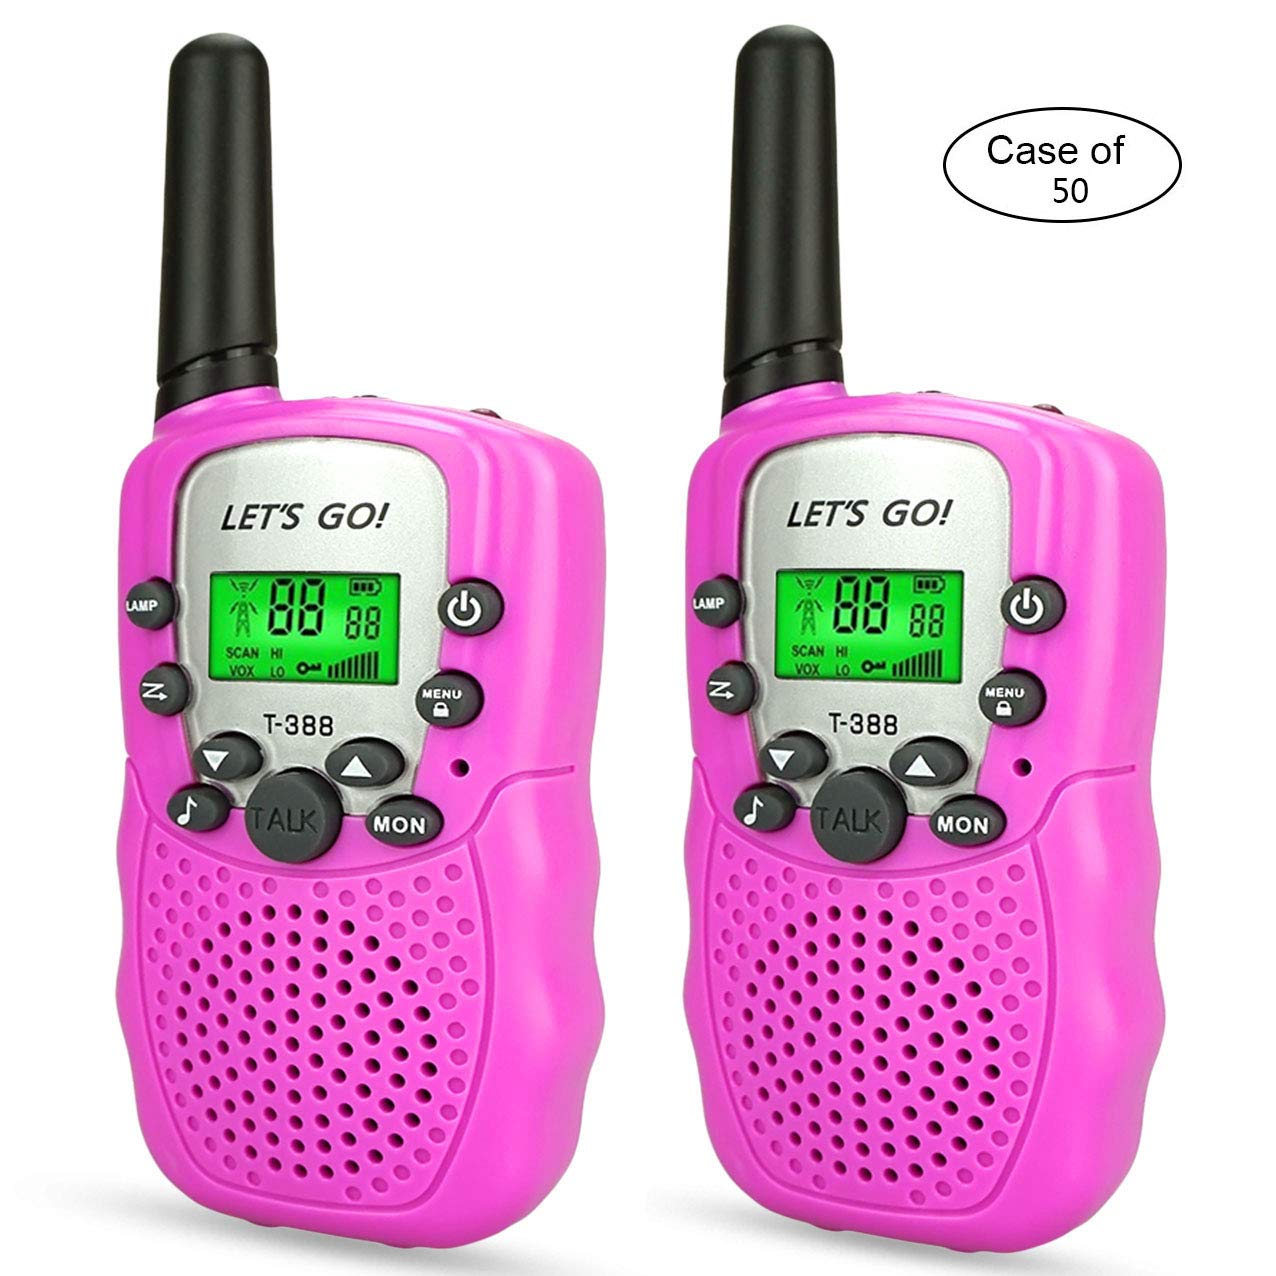 Case of 50, Long Range Walkie Talkies Two Way Radios for Kids